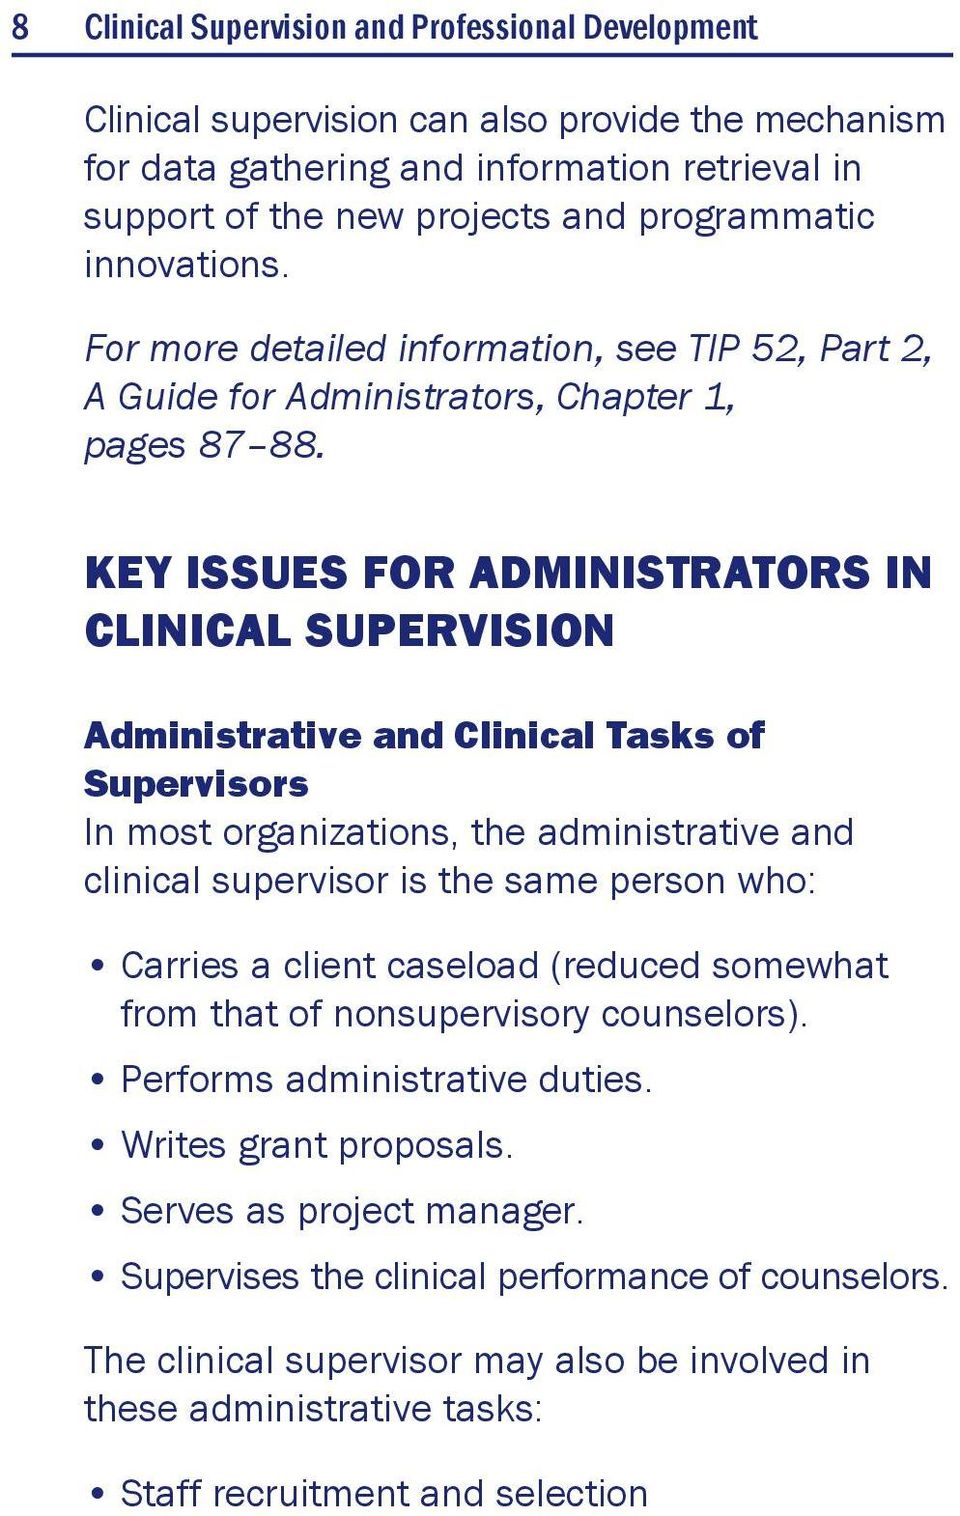 KEY ISSUES FOR ADMINISTRATORS IN CLINICAL SUPERVISION Administrative and Clinical Tasks of Supervisors In most organizations, the administrative and clinical supervisor is the same person who: